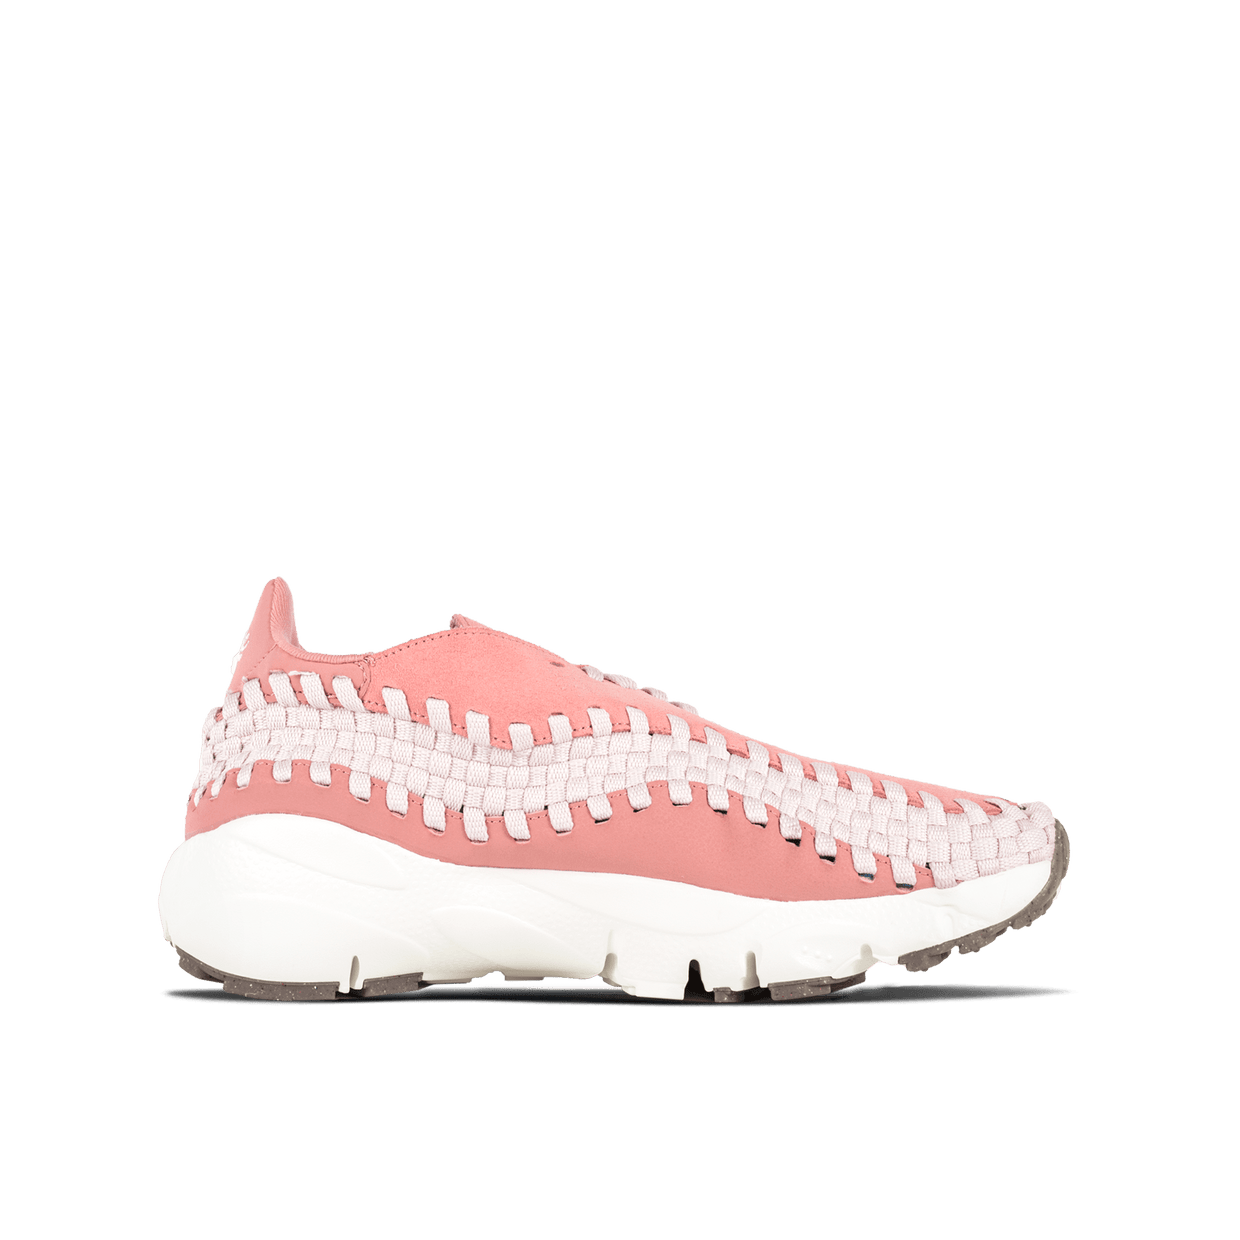 Wmns Nike Air Footscape Woven - Pink